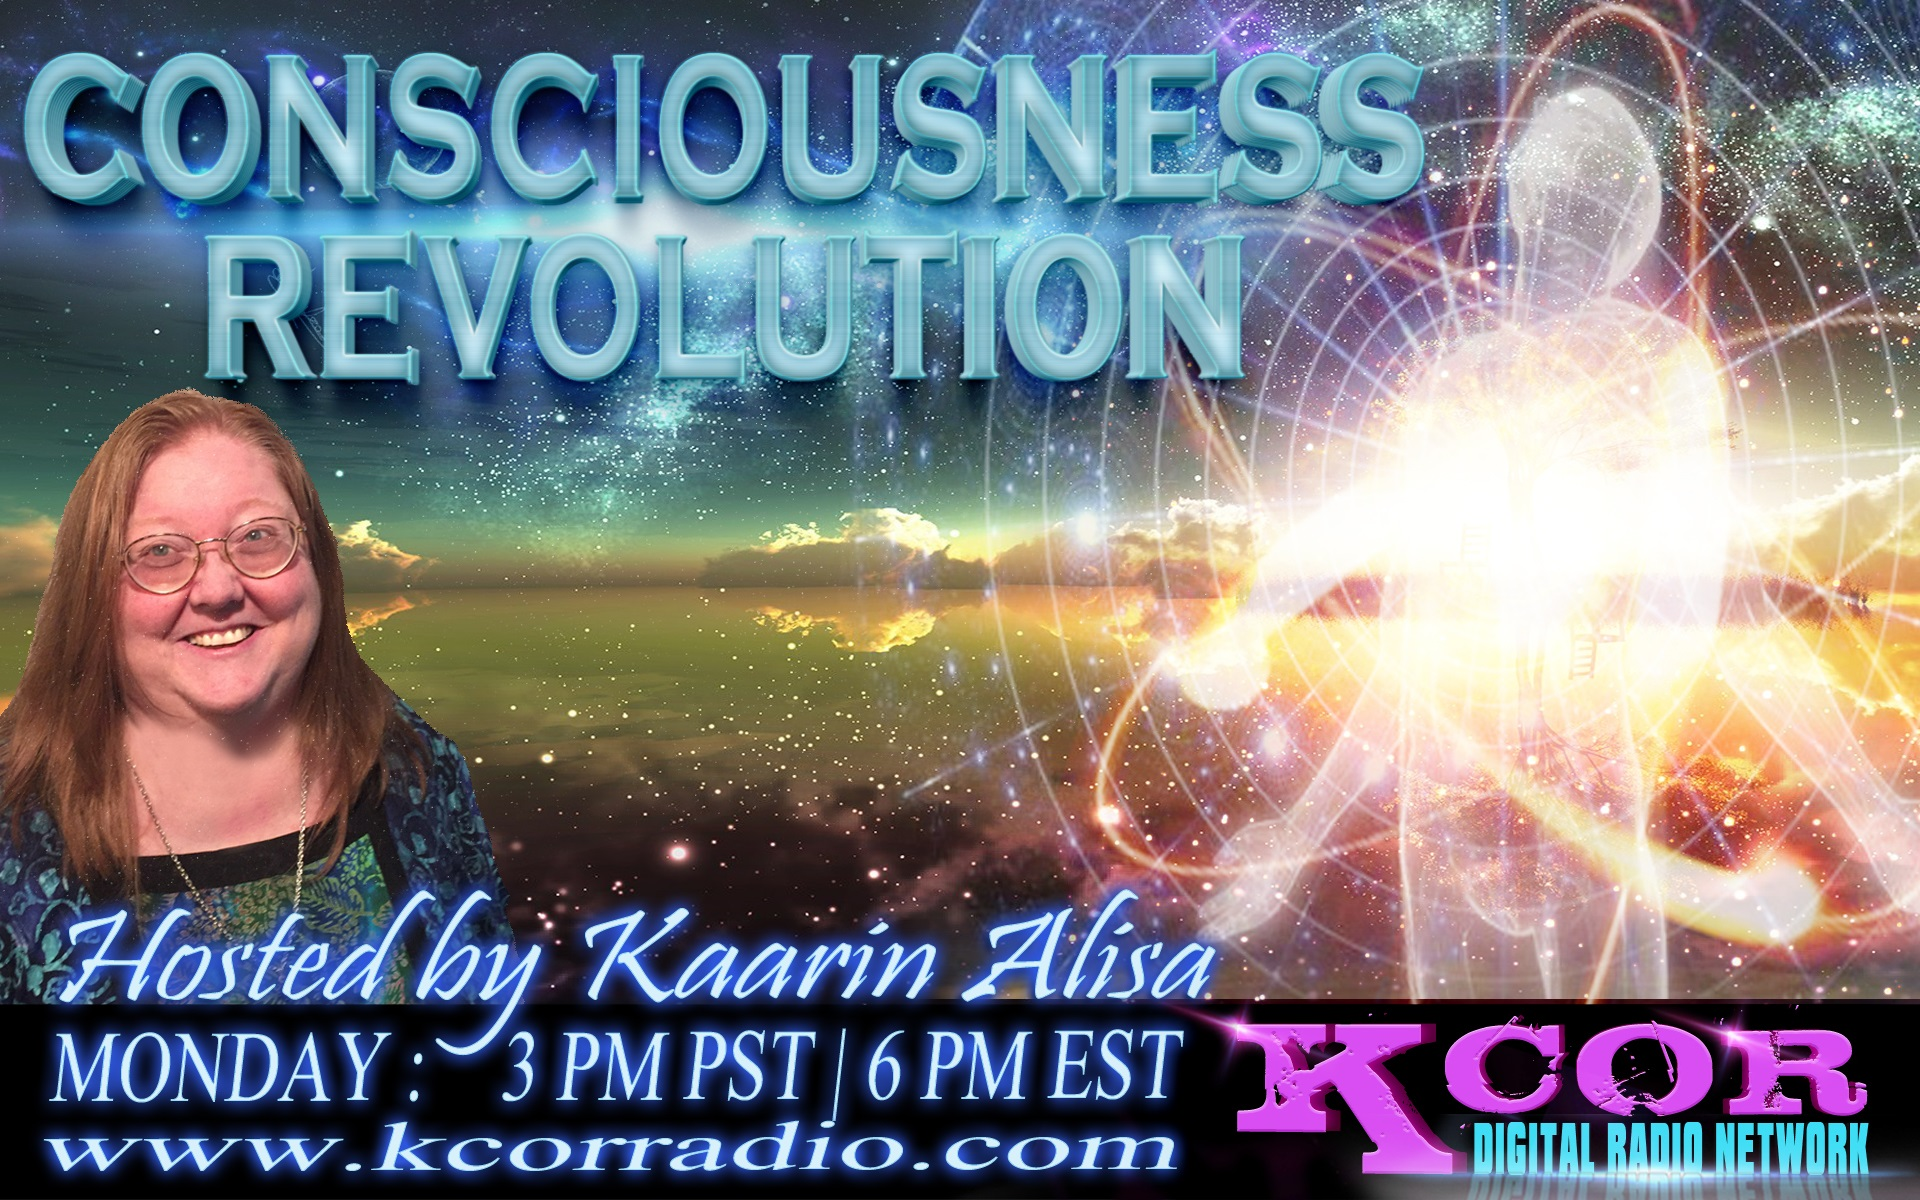 Consciousness Revolution Radio